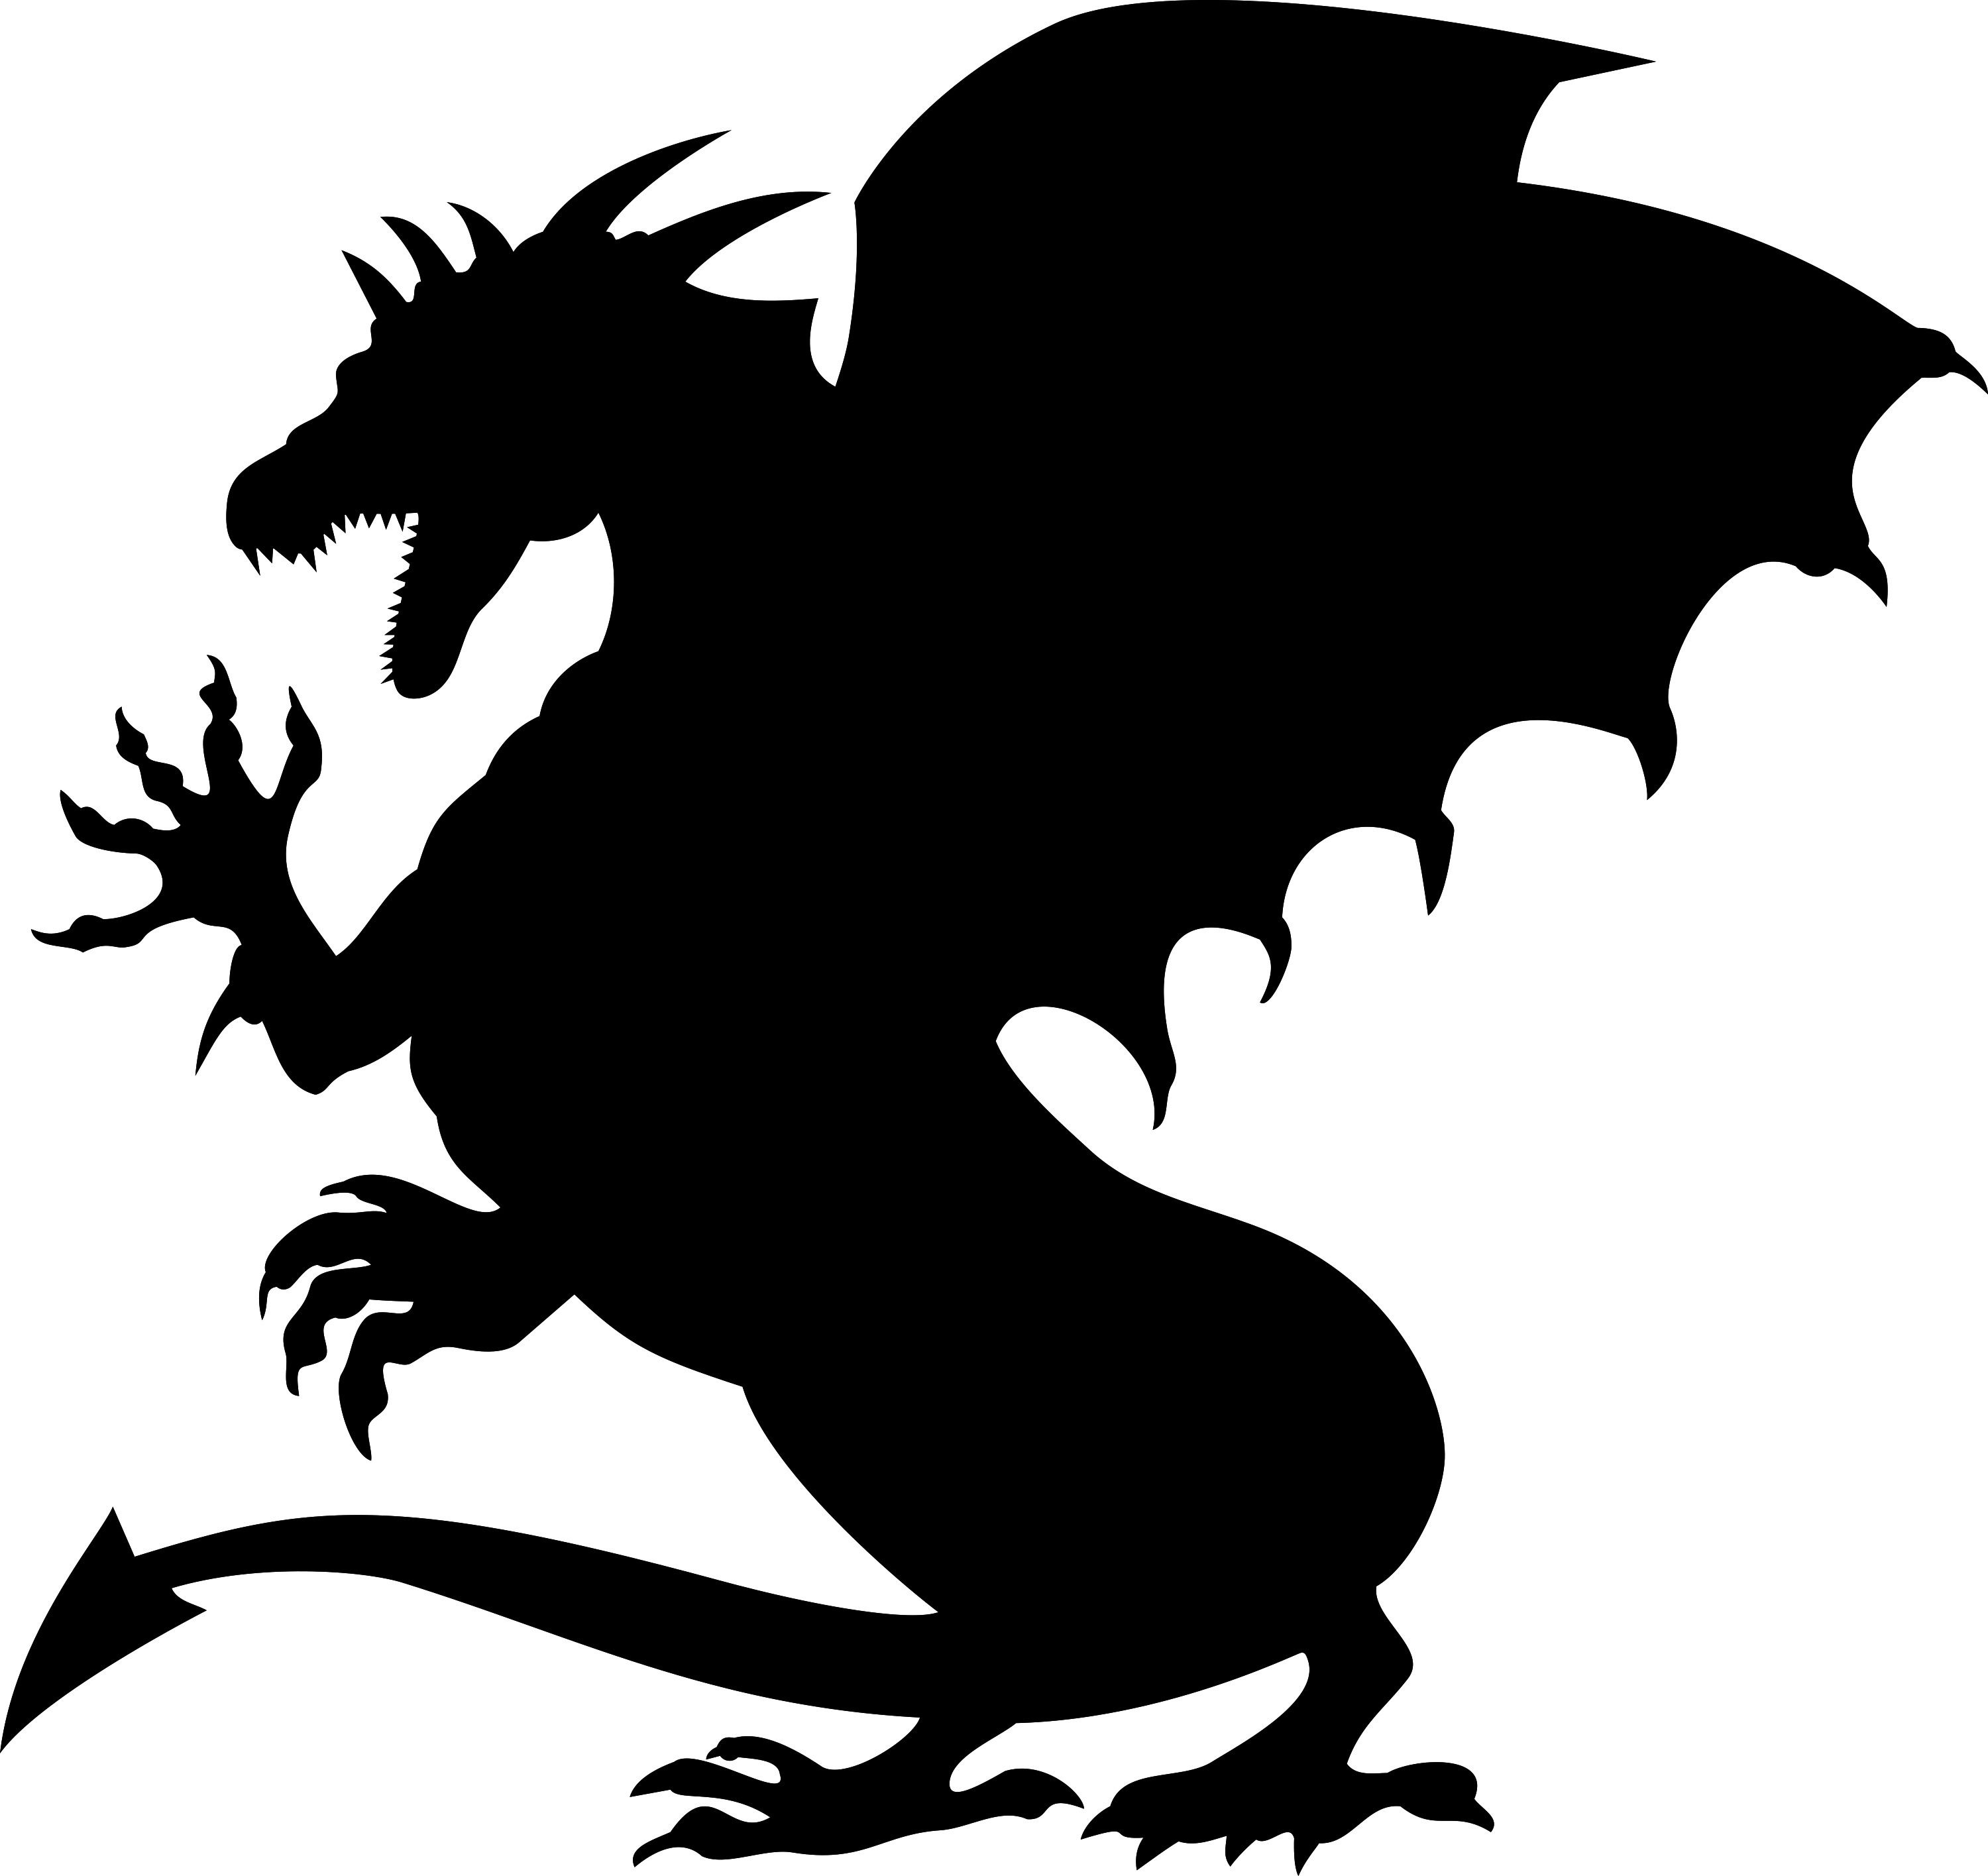 977x818 dragon silhouette by 357supermagnum 1 3000x2831 reimagining harry potter royalty free art graphic